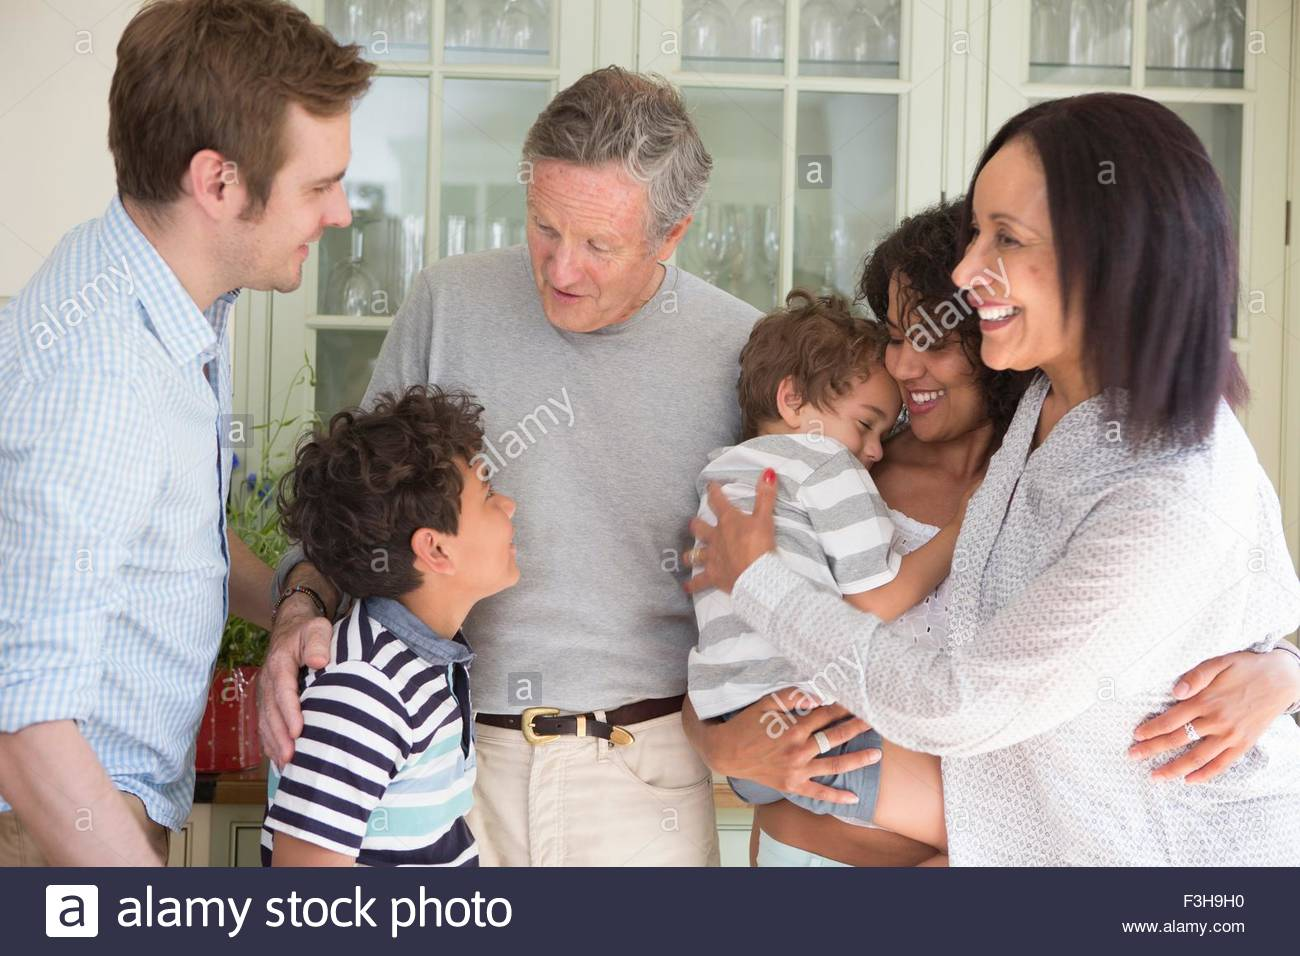 Family being greeted by grandparents on family visit - Stock Image